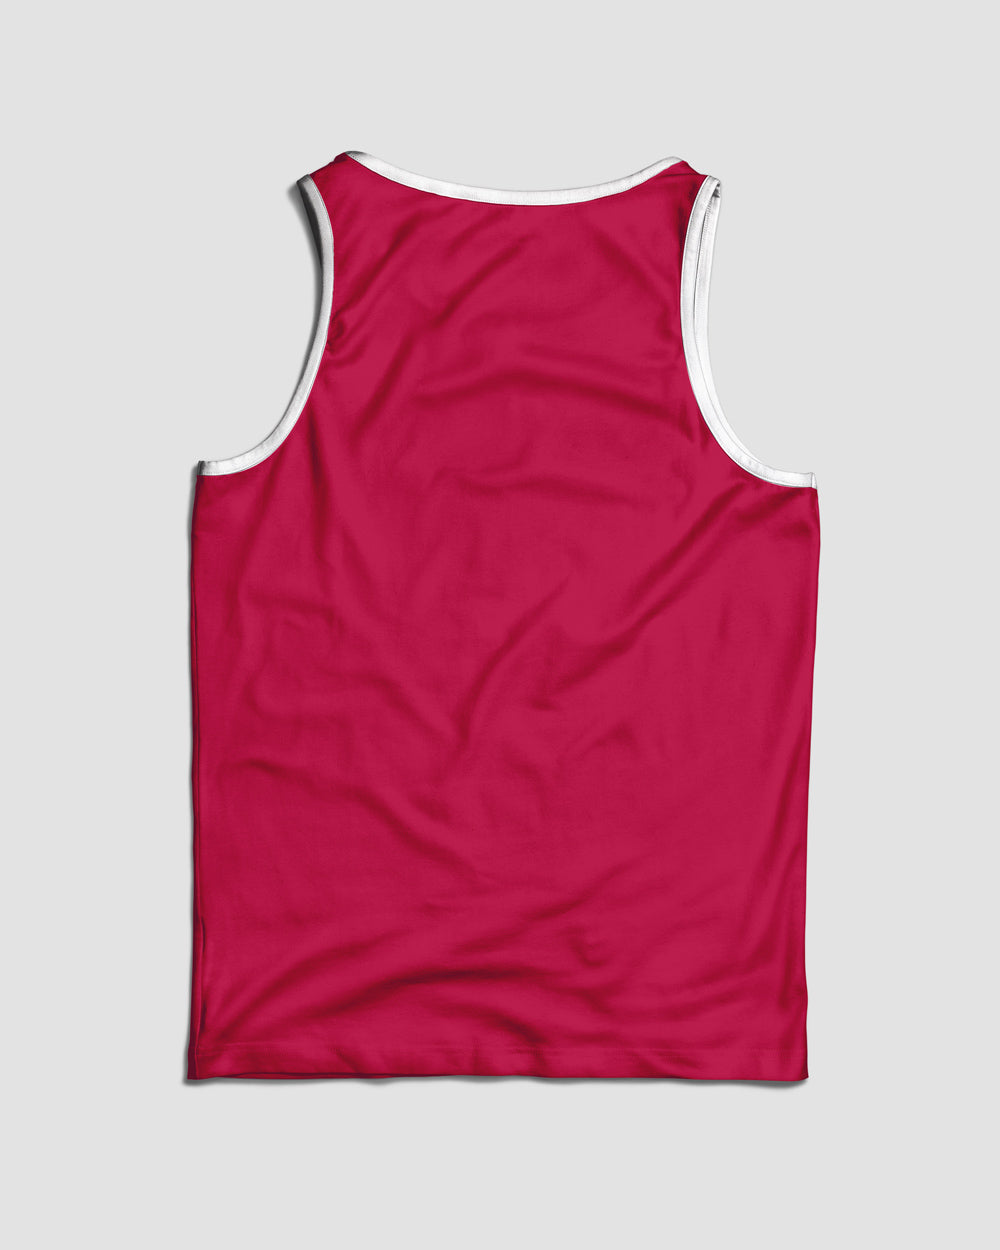 RADICAL x WASABI 'The SELF' Tanktop